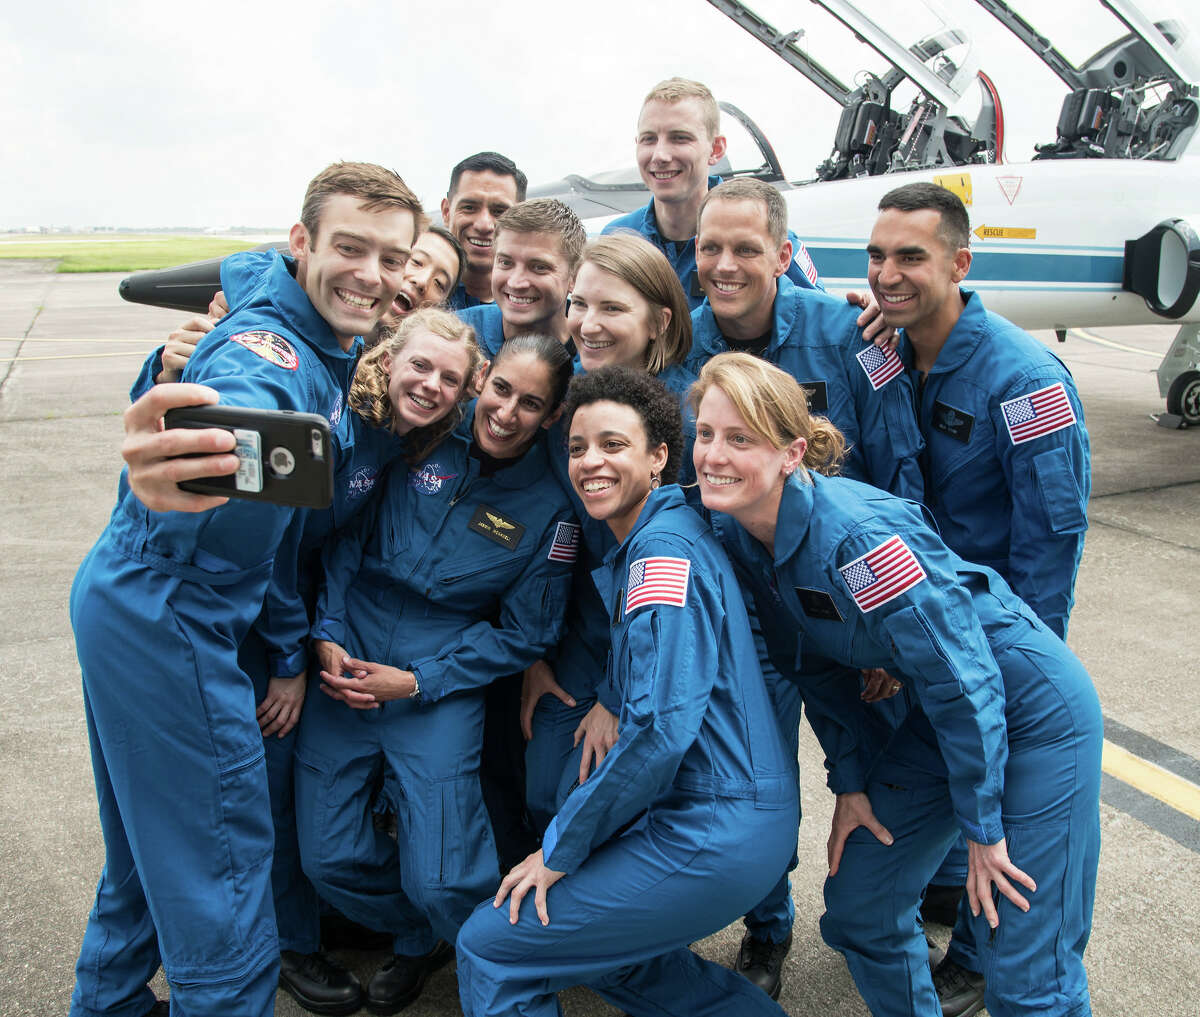 (June 6, 2017) --- NASA's 2017 Astronaut Candidate Class stopped for a group photo while getting fitted for flight suits at Ellington Airport near NASA's Johnson Space Center in Houston, Texas. >>SEE: Historical photos show the women who built NASA (2019)